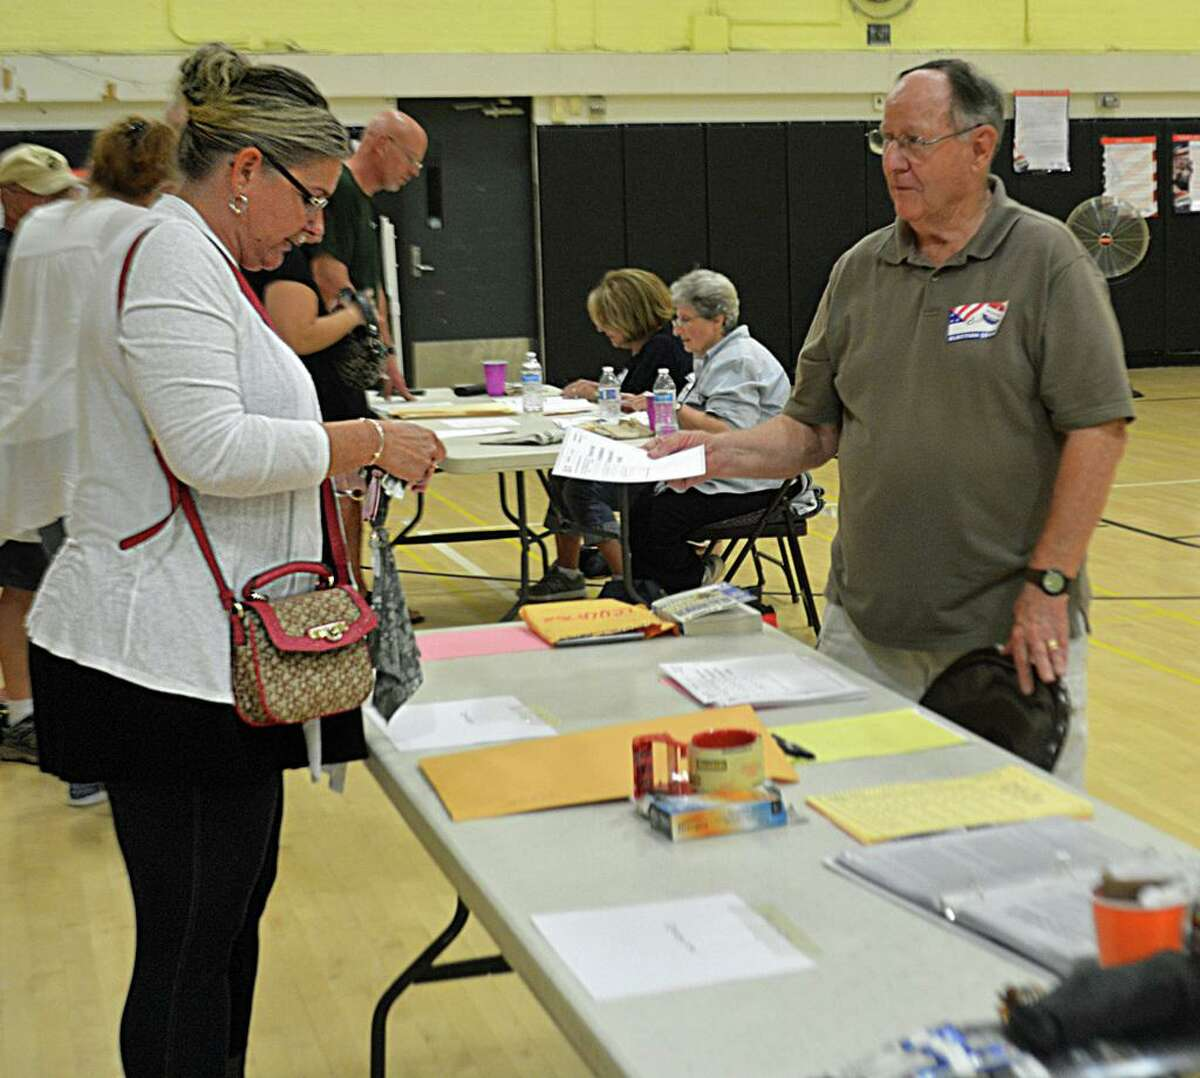 Voters take part in the 2018 primary election in Middletown, choosing their preferred candidates for state offices.